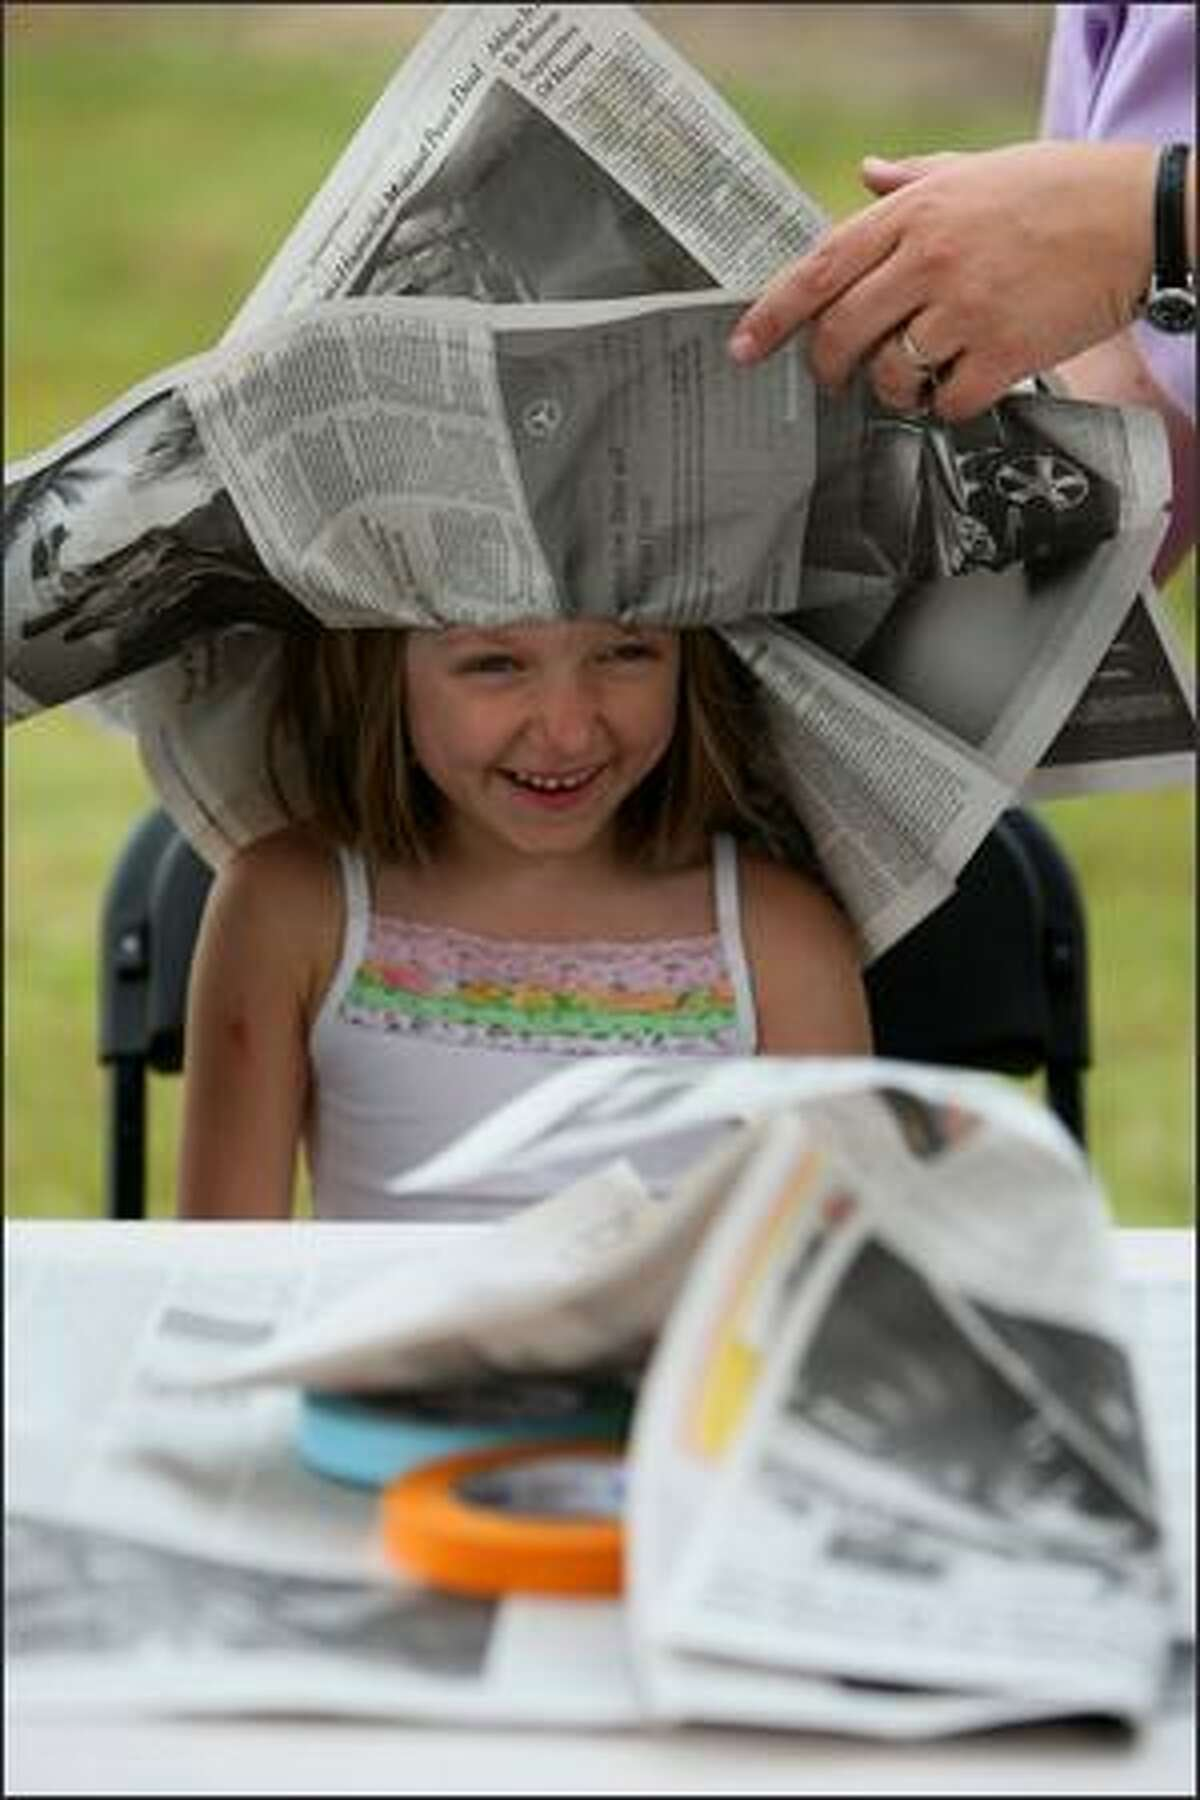 Kelly Blair of Seattle makes a newspaper hat during the Taste of Edmonds on Saturday. The festival features food booths, music and kids activities.